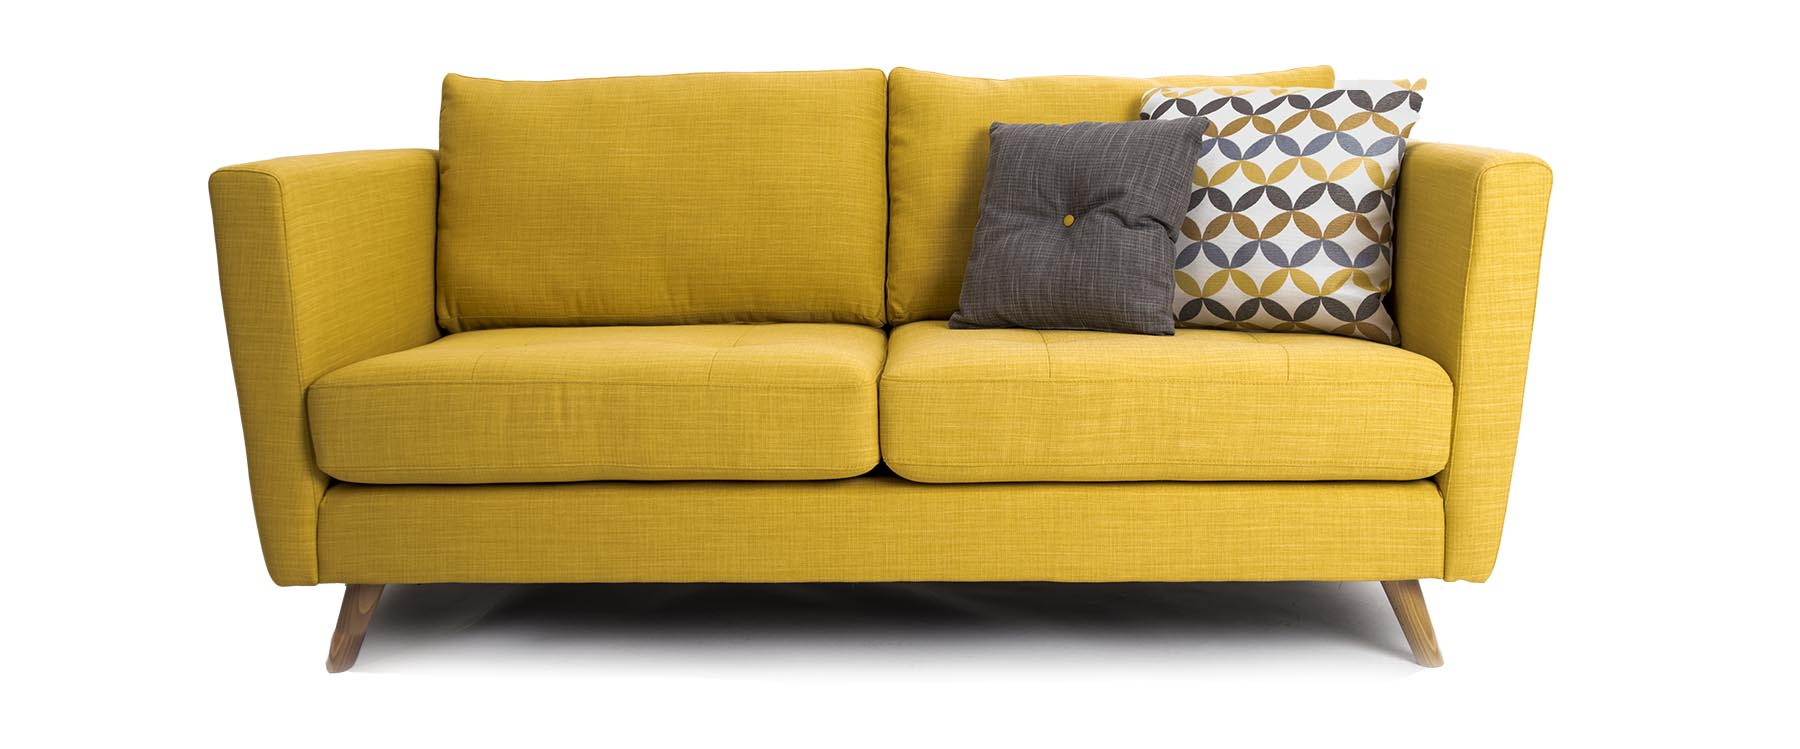 Sofa And Home Voucher Code Clara 3 Seater Sofa In Gold Fabric